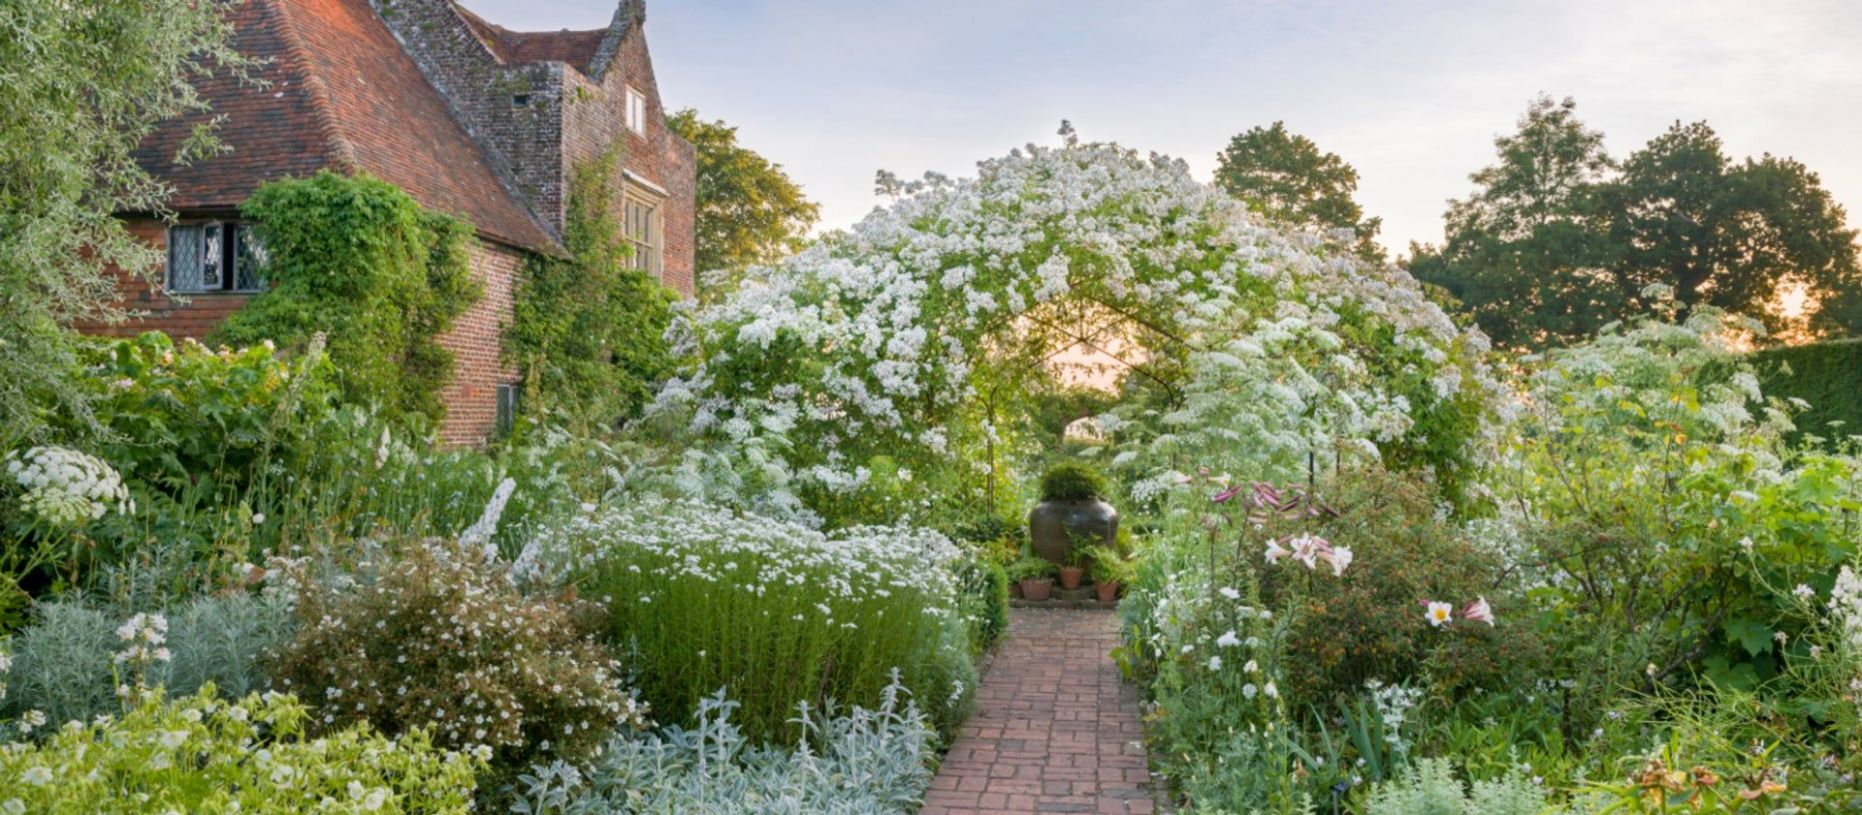 An Ode to the English Garden (With images) | English garden ..